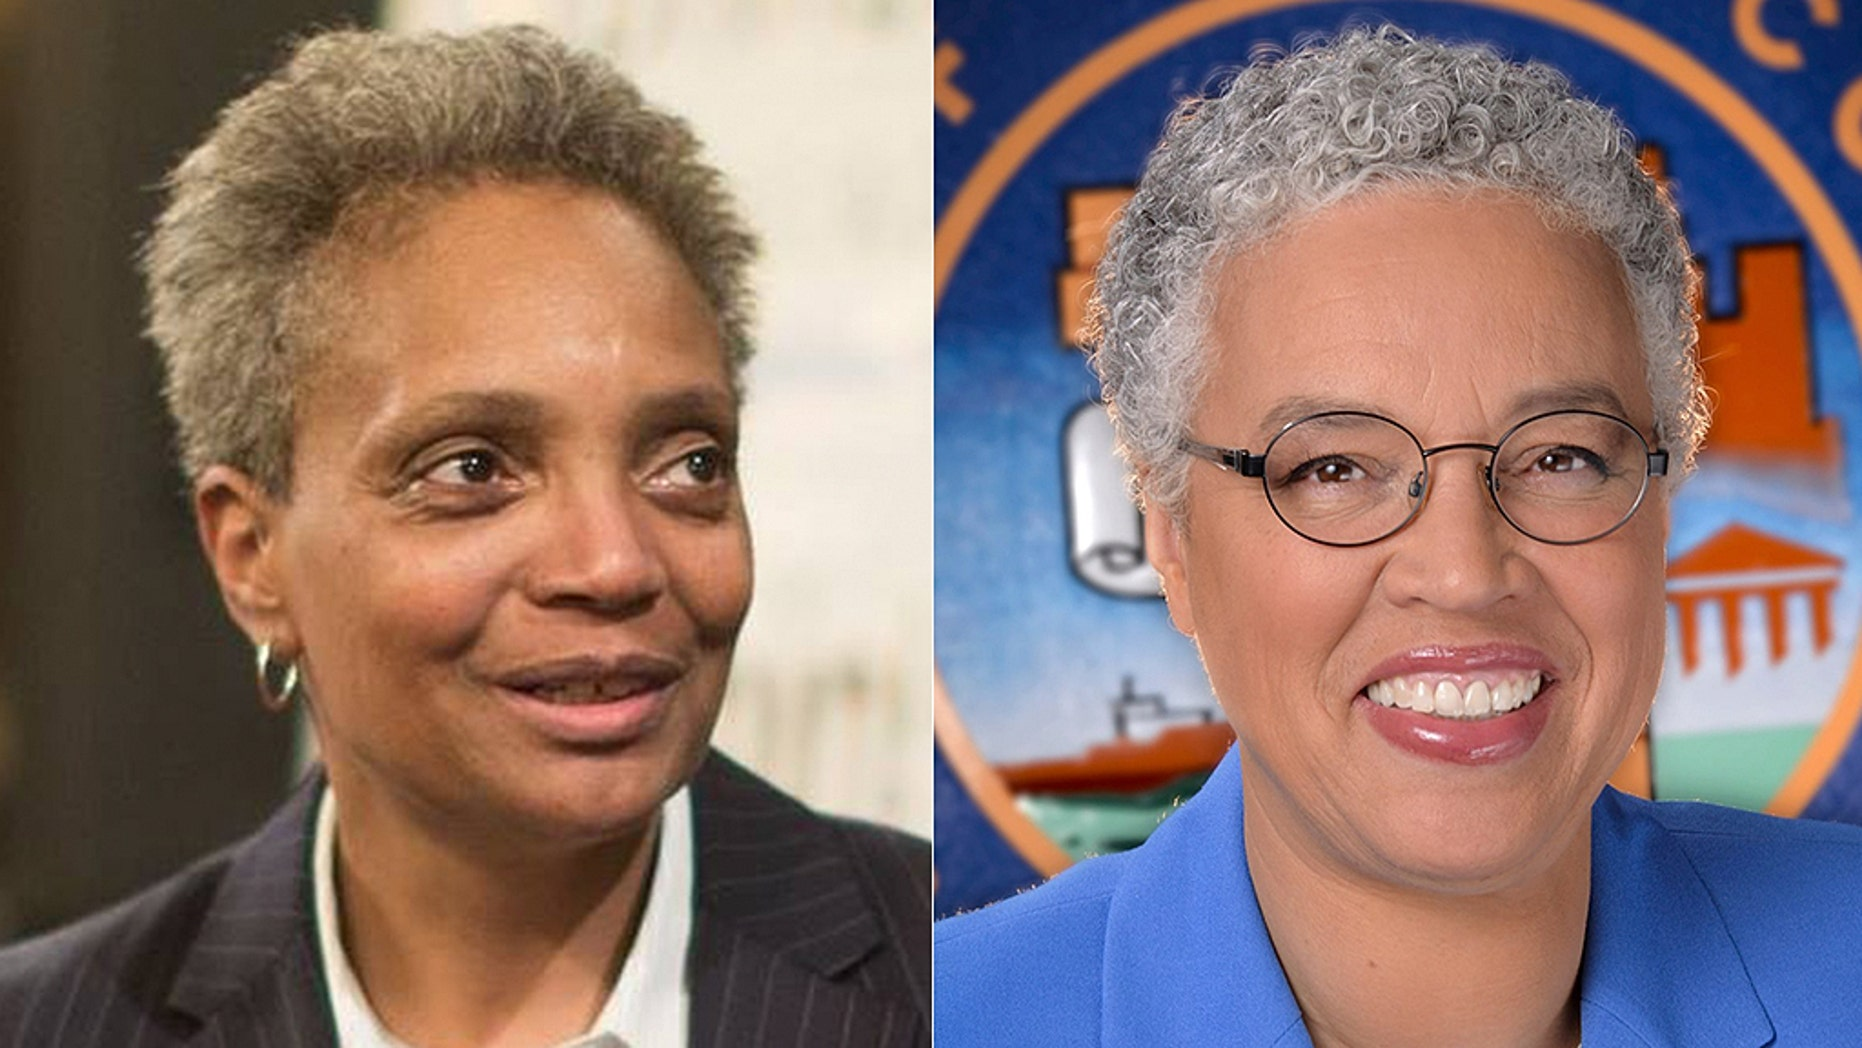 Lori Lightfoot, left, and Toni Preckwinkle, right, will face each other in an April 2 runoff.